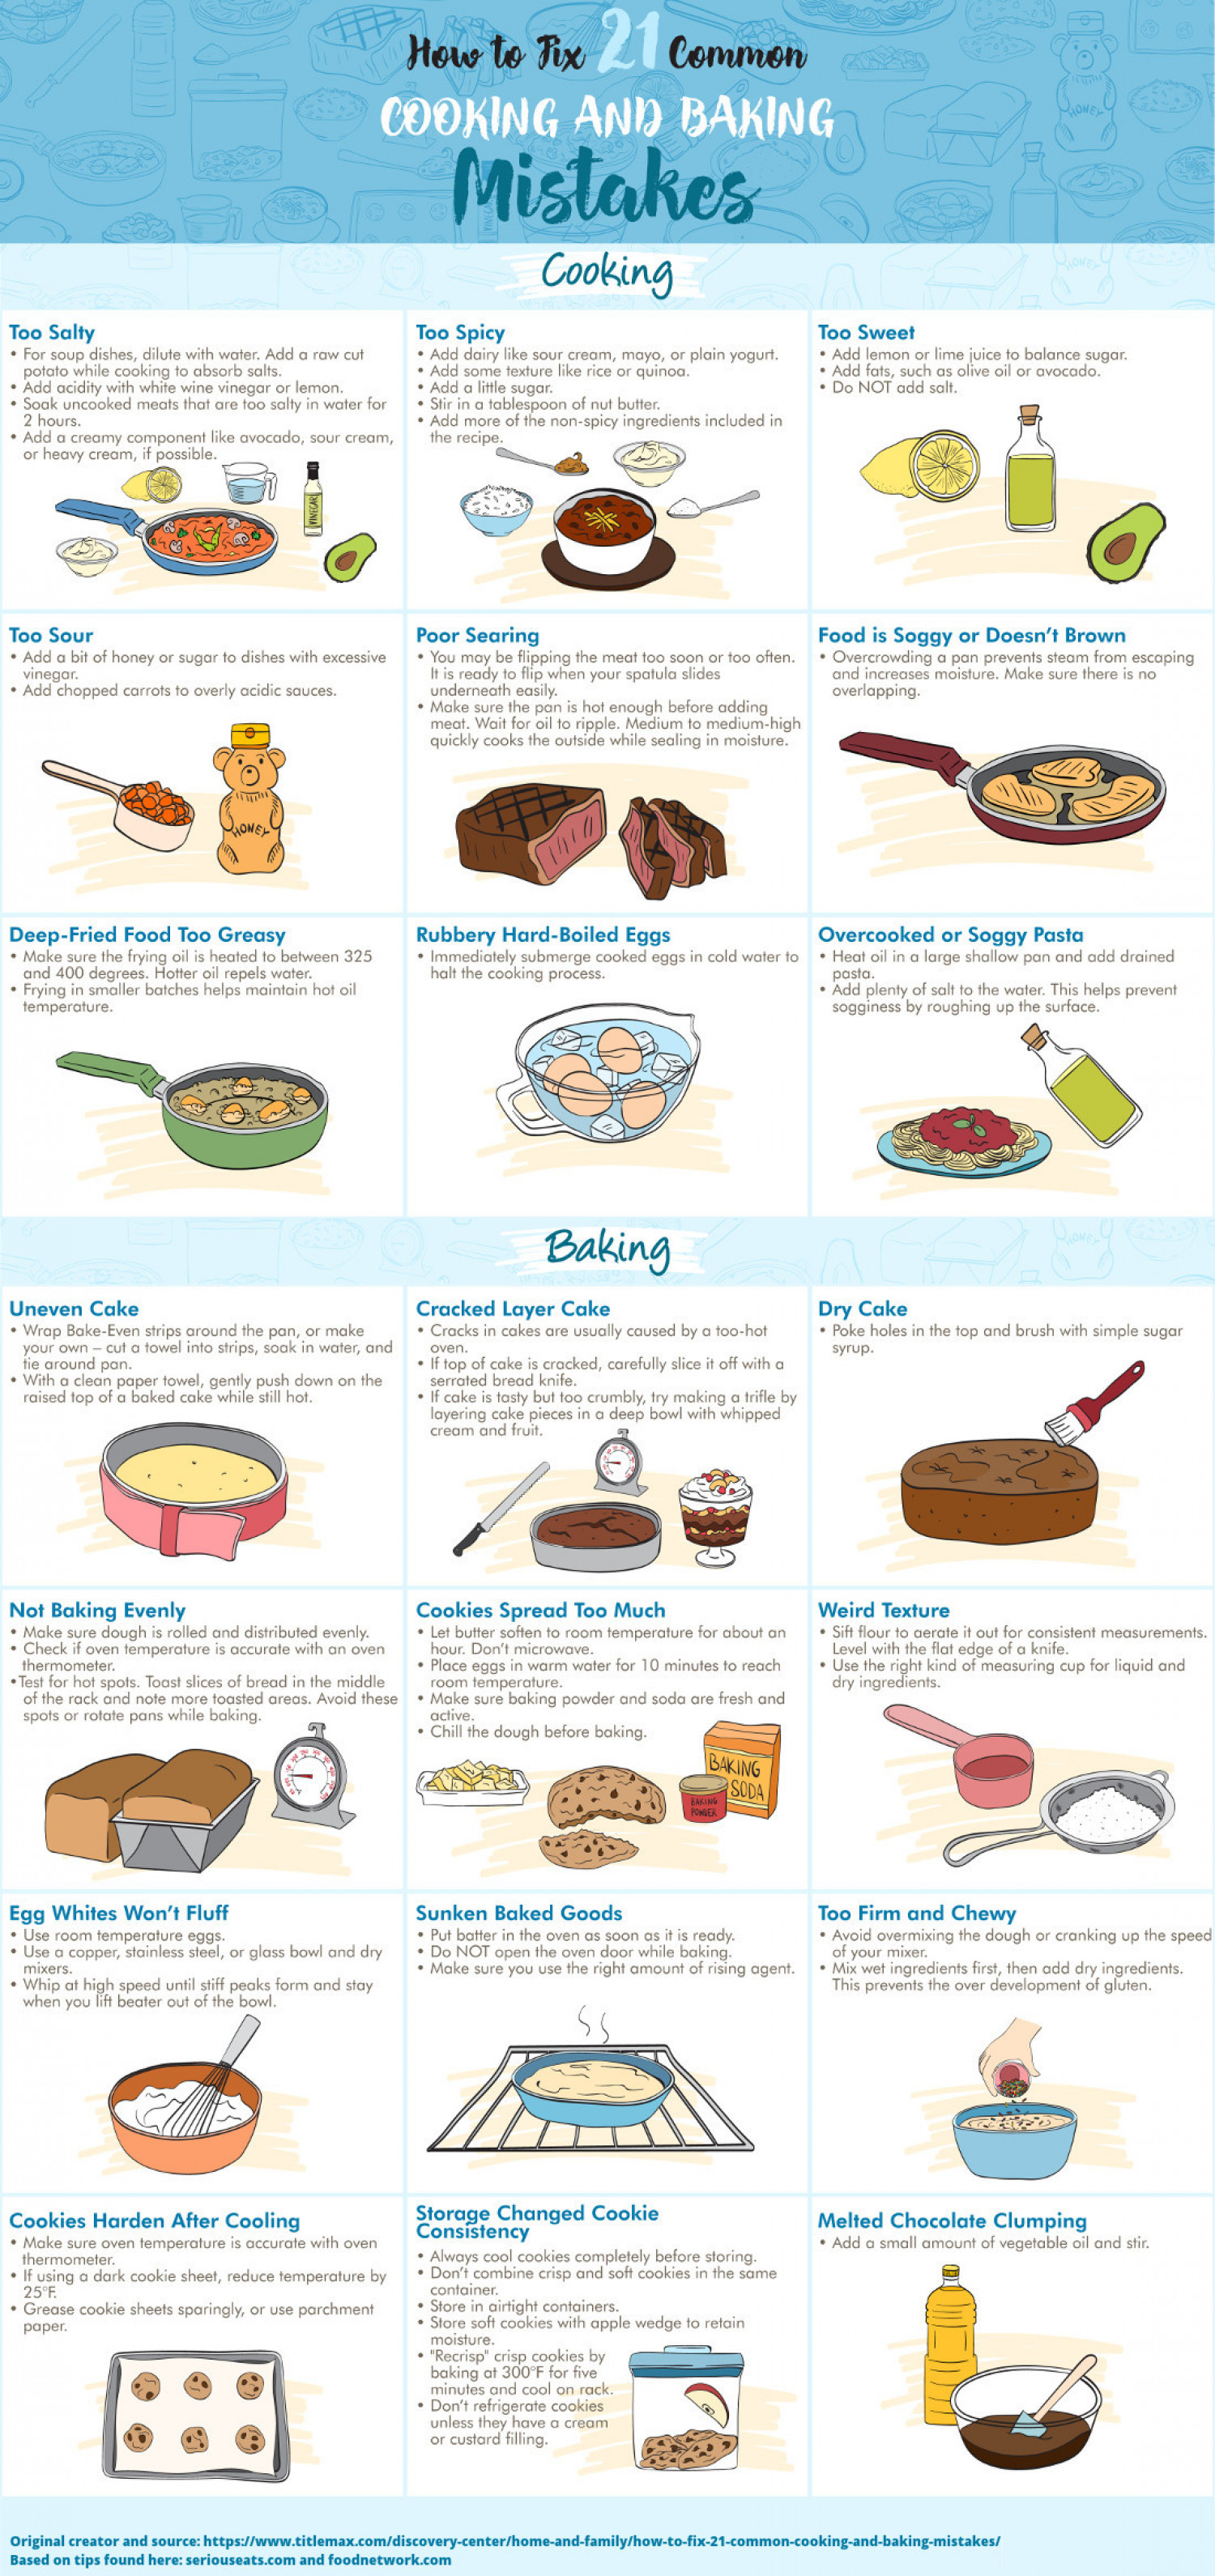 How to Fix 21 Common Cooking and Baking Mistakes Infographic